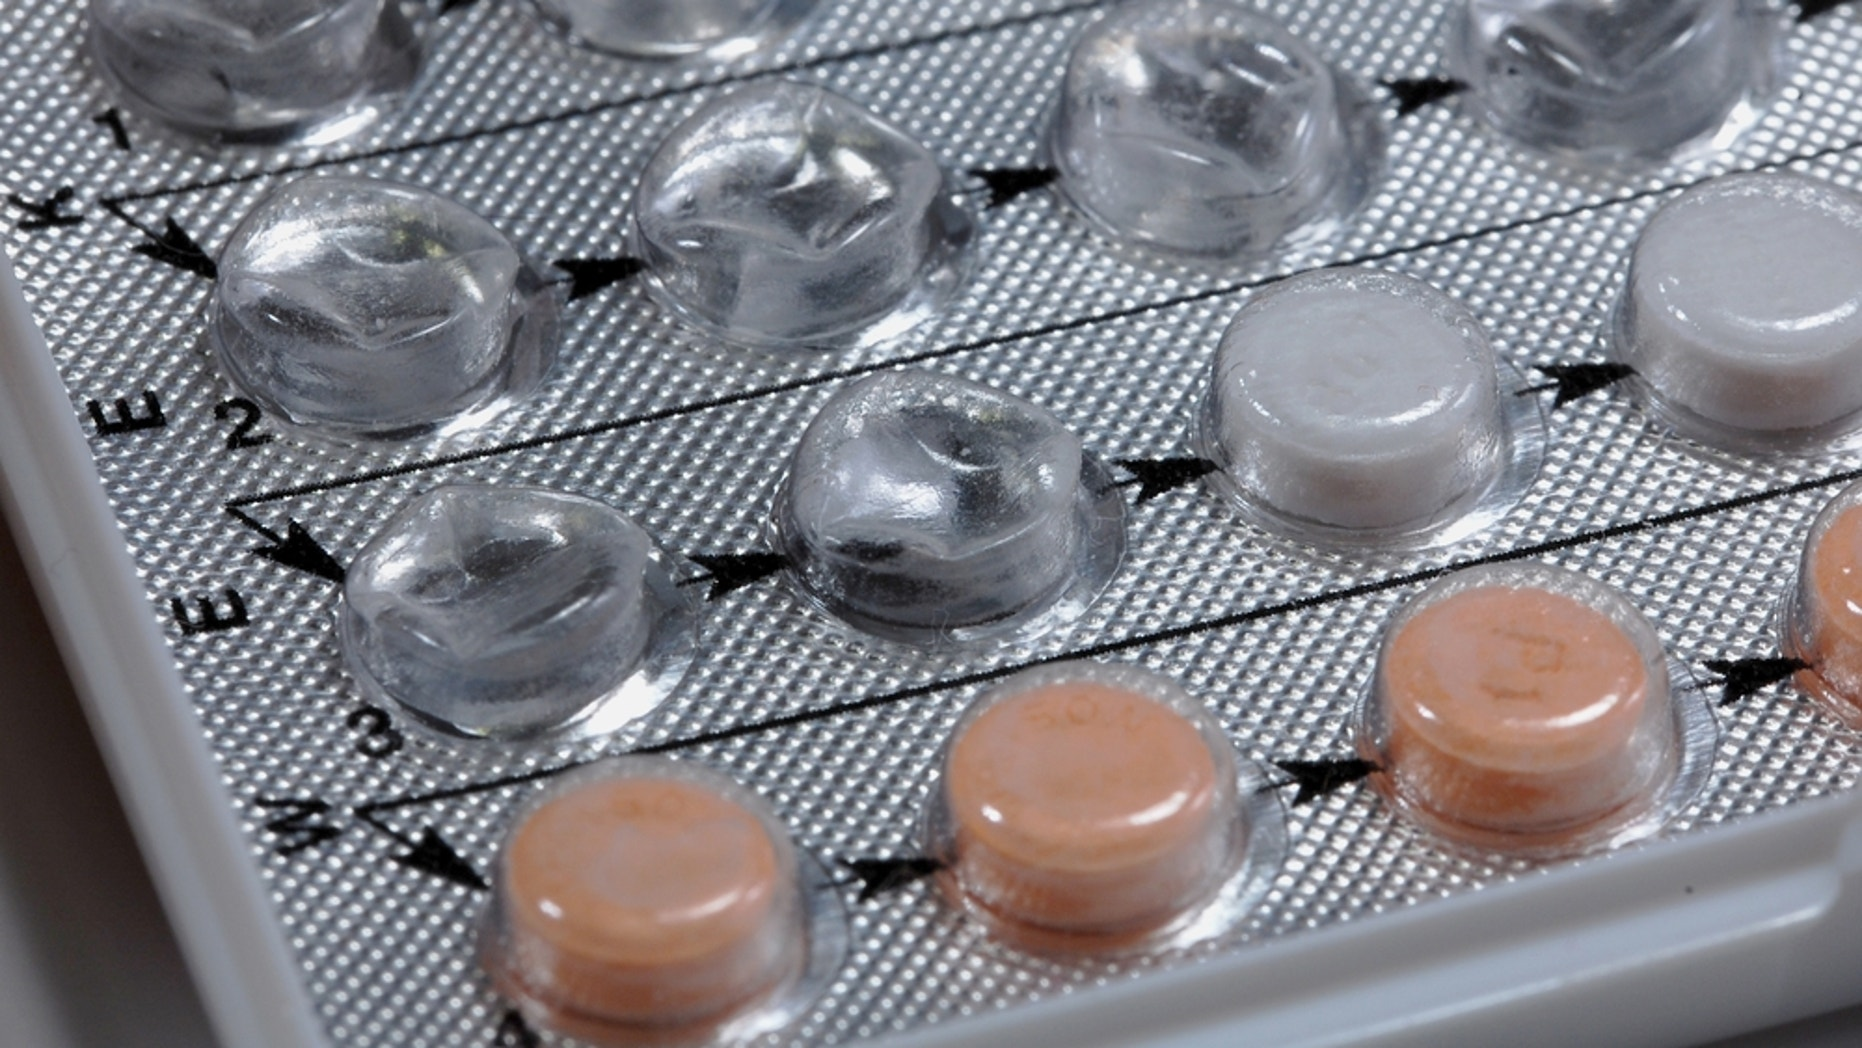 Male oral contraceptive pill passes safety tests